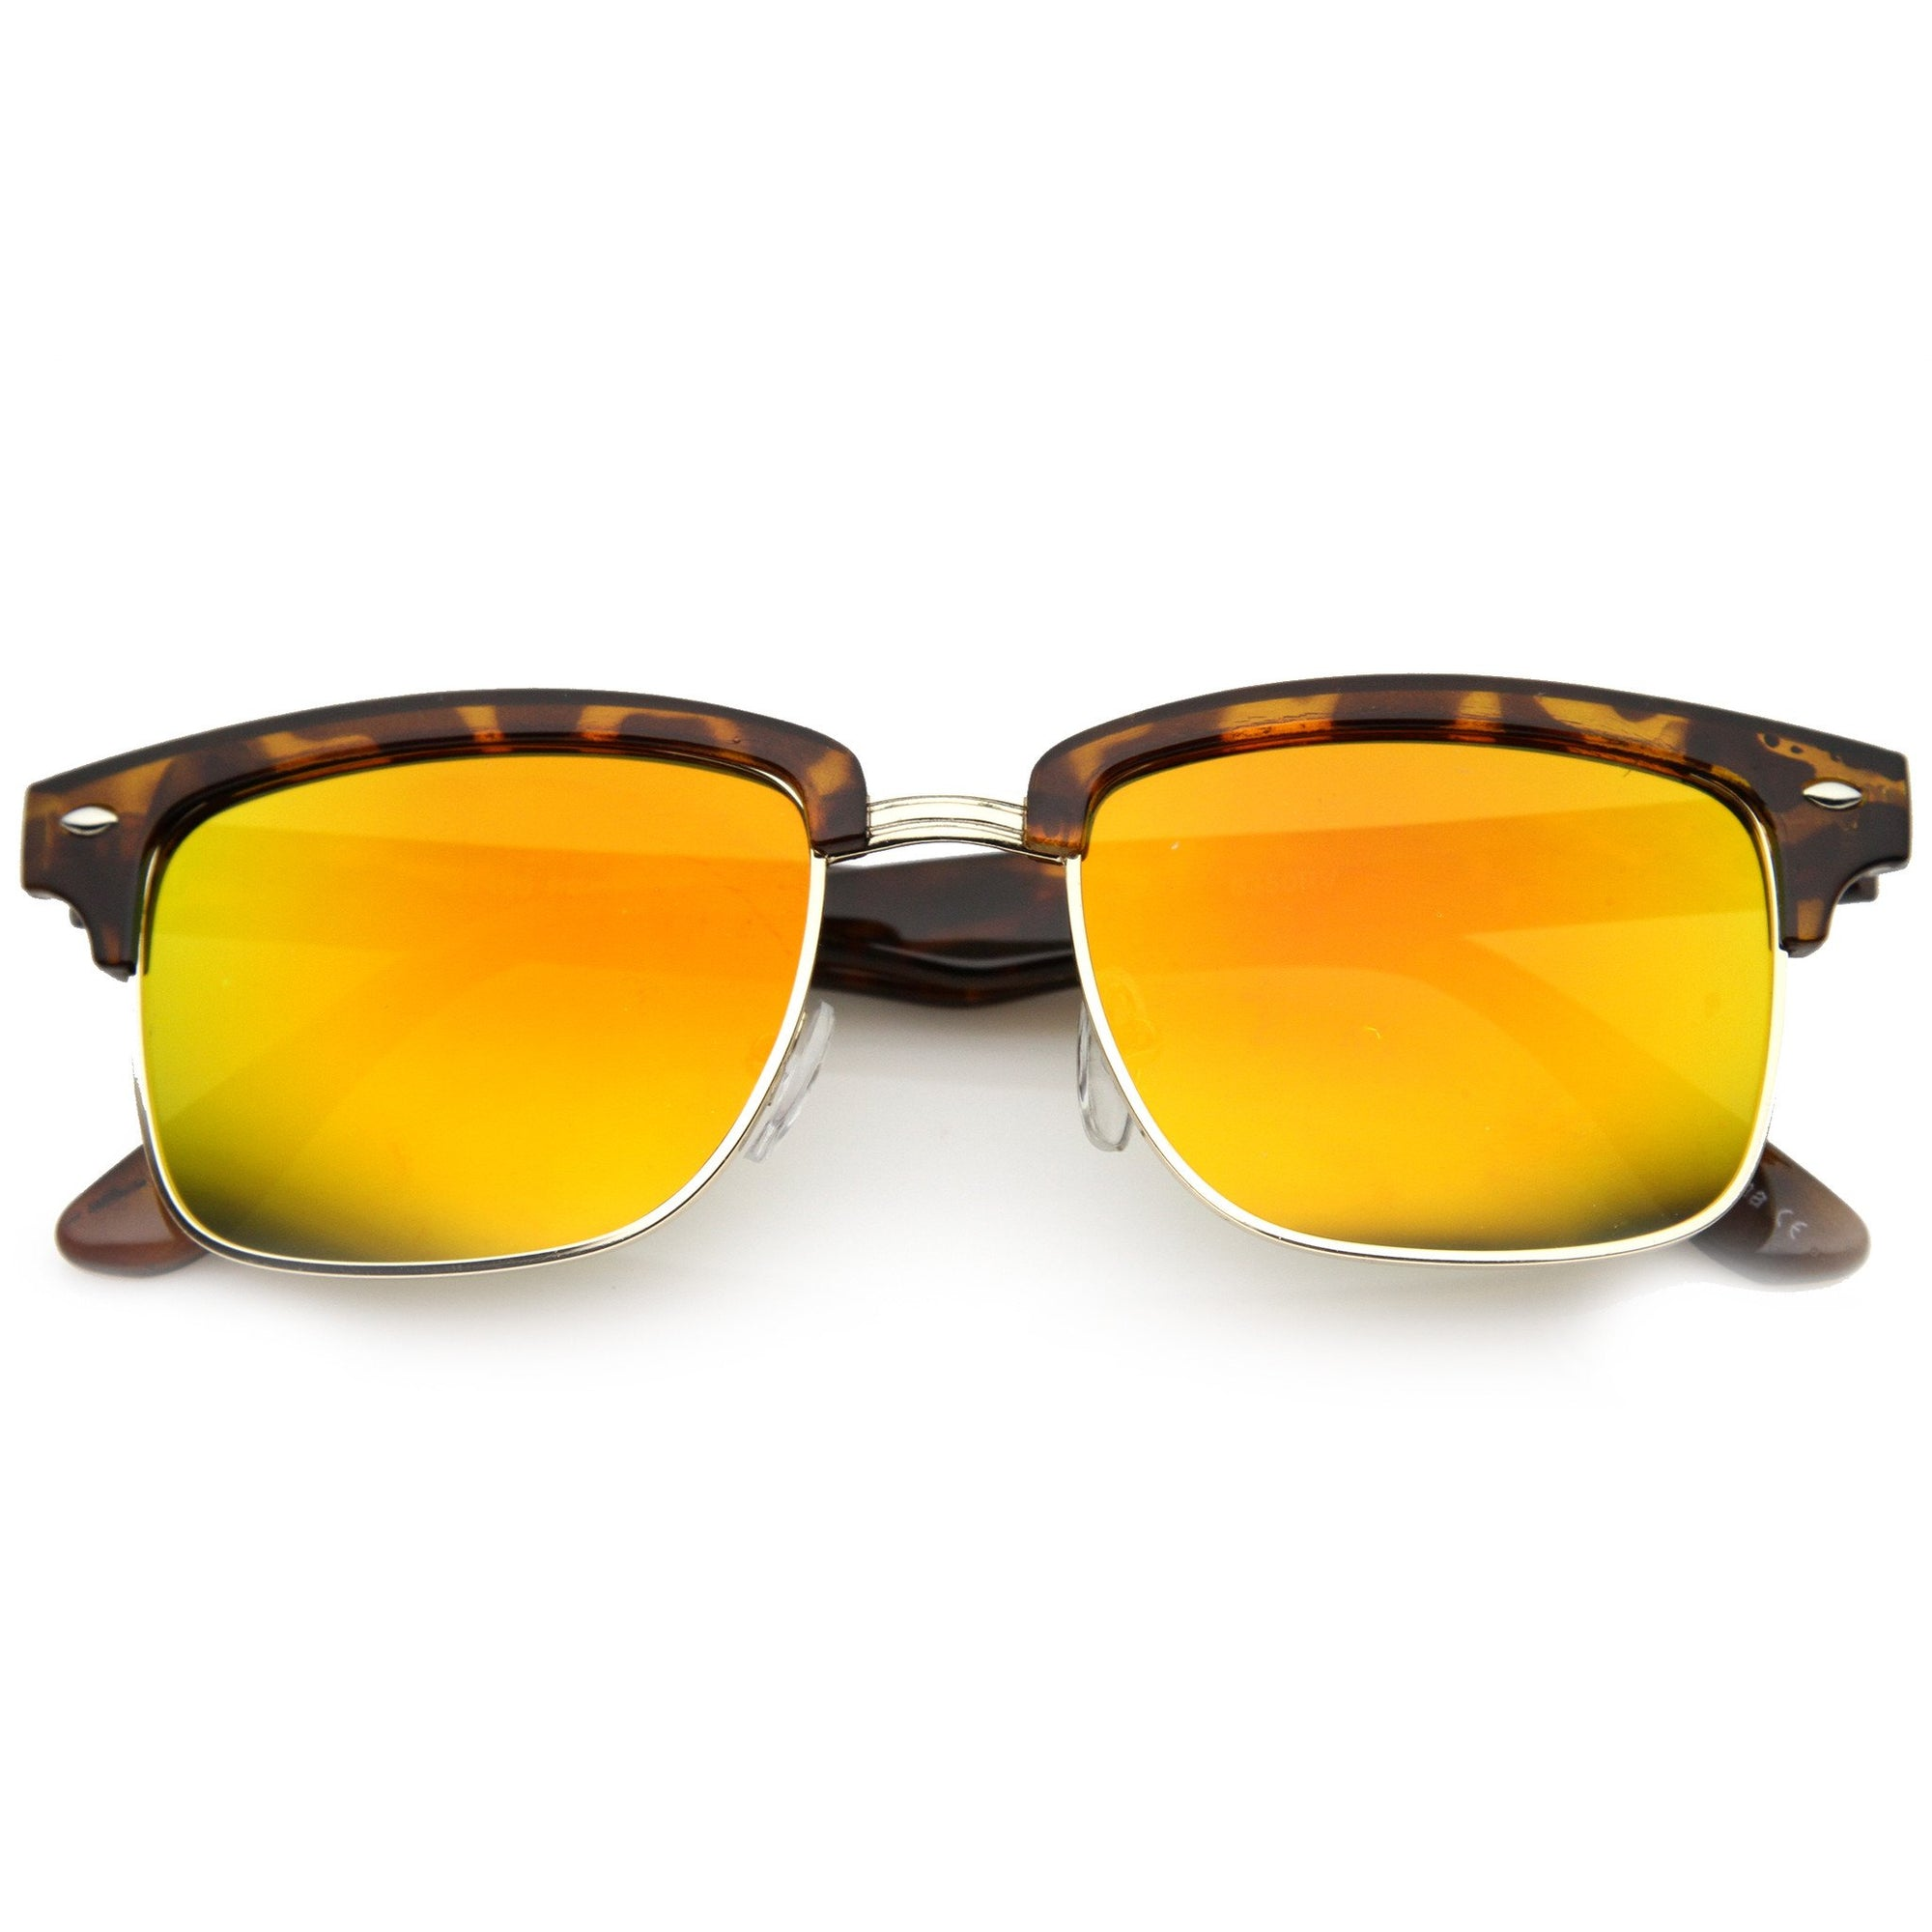 ae5843cb4e ... Retro Half Frame Horned Rim Mirror Lens Sunglasses 9741 · Tortoise Gold  Fire